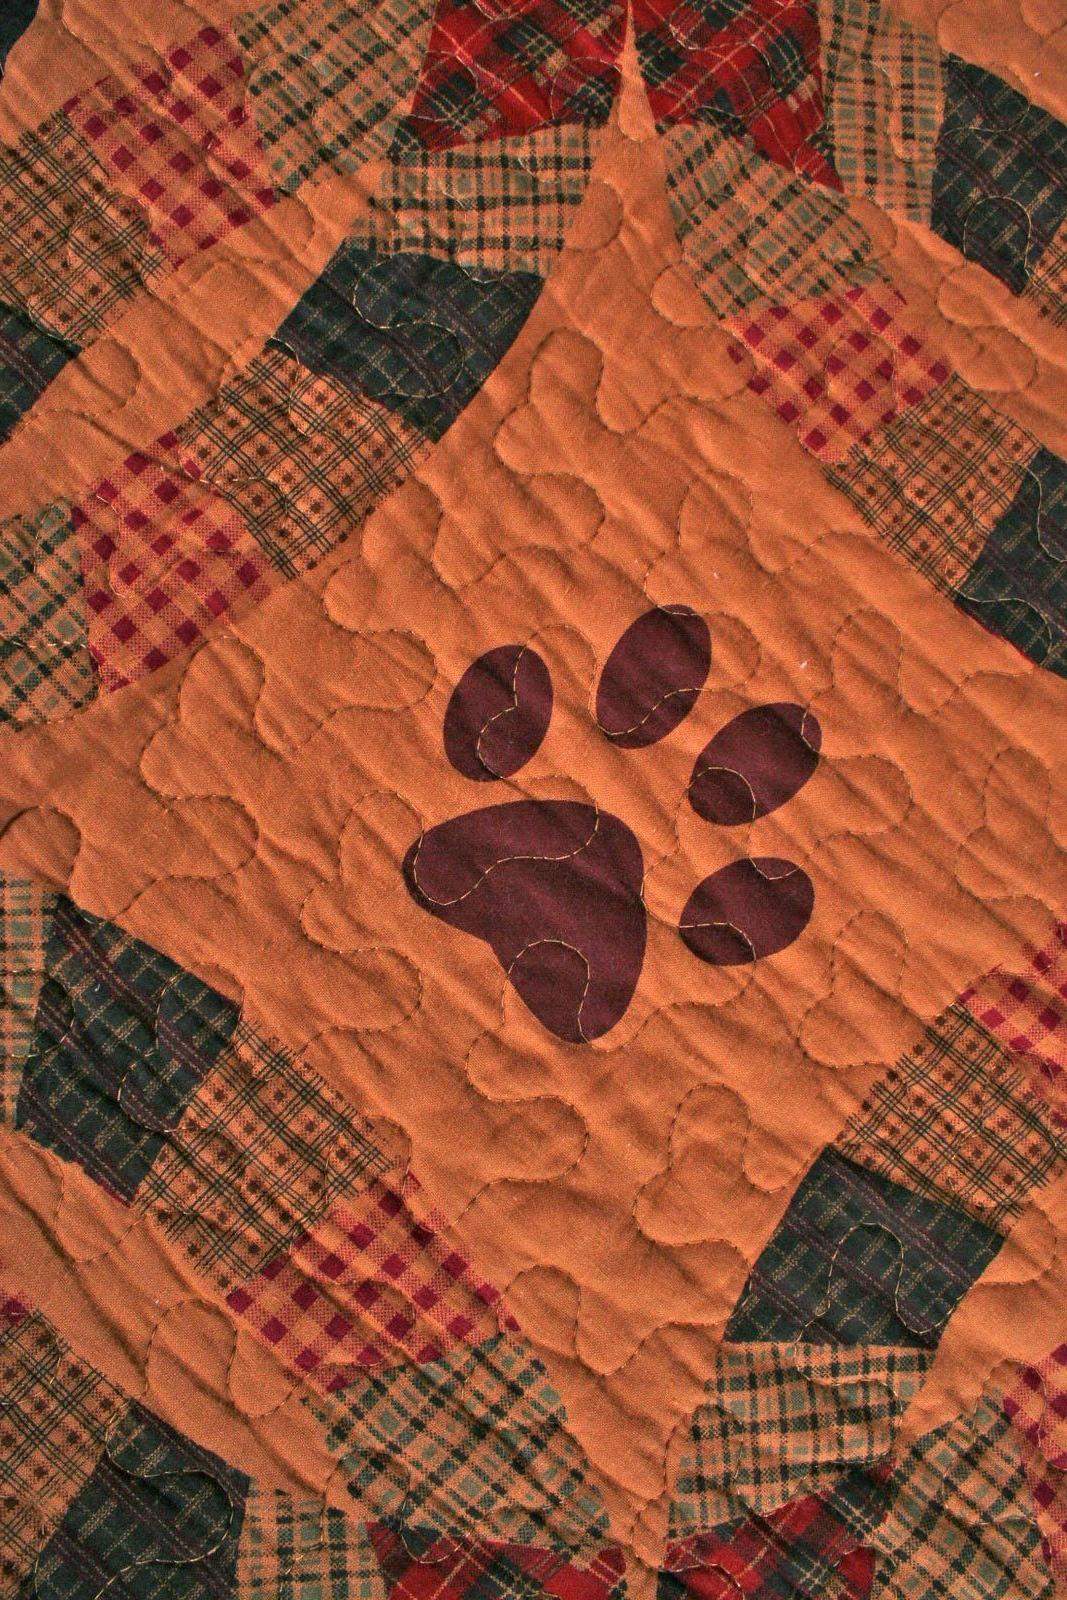 Quilt Black Paw Cabin Life Lap Bedding